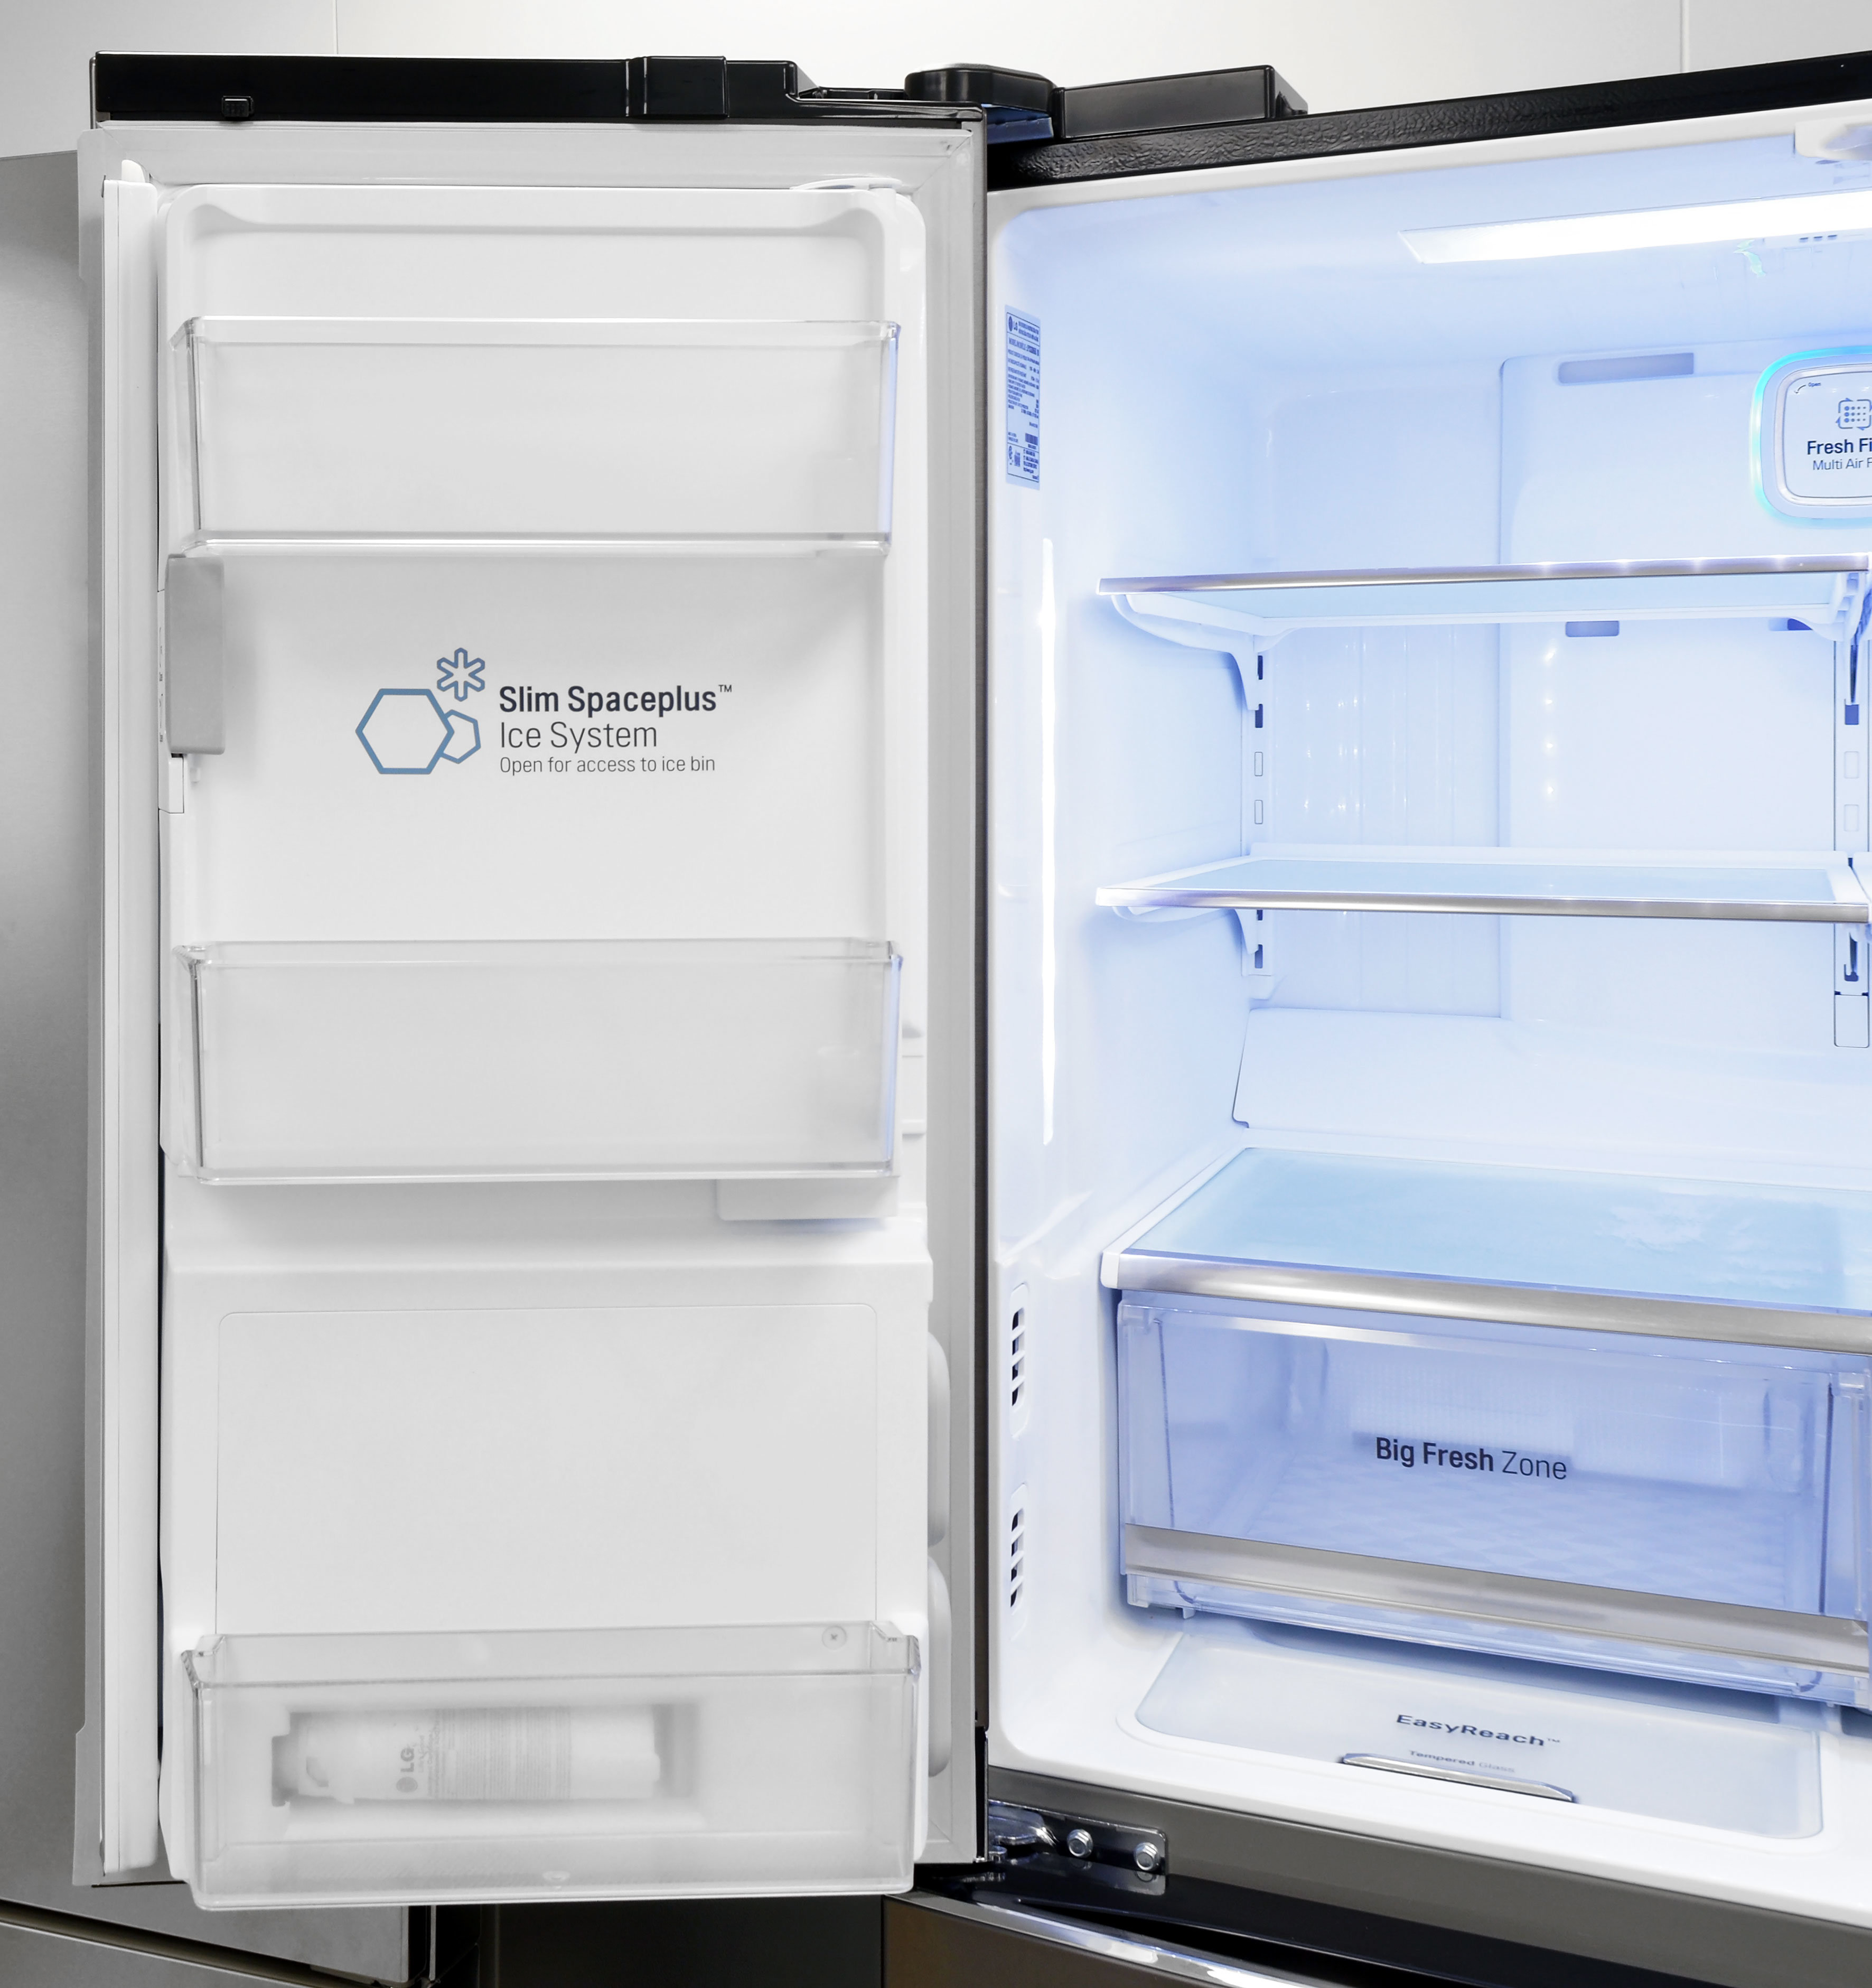 beautiful Kitchen Appliance Comparison Sites #9: Door storage on the left side of the LG LPXS30866Du0026#39;s fridge is shallow, but still